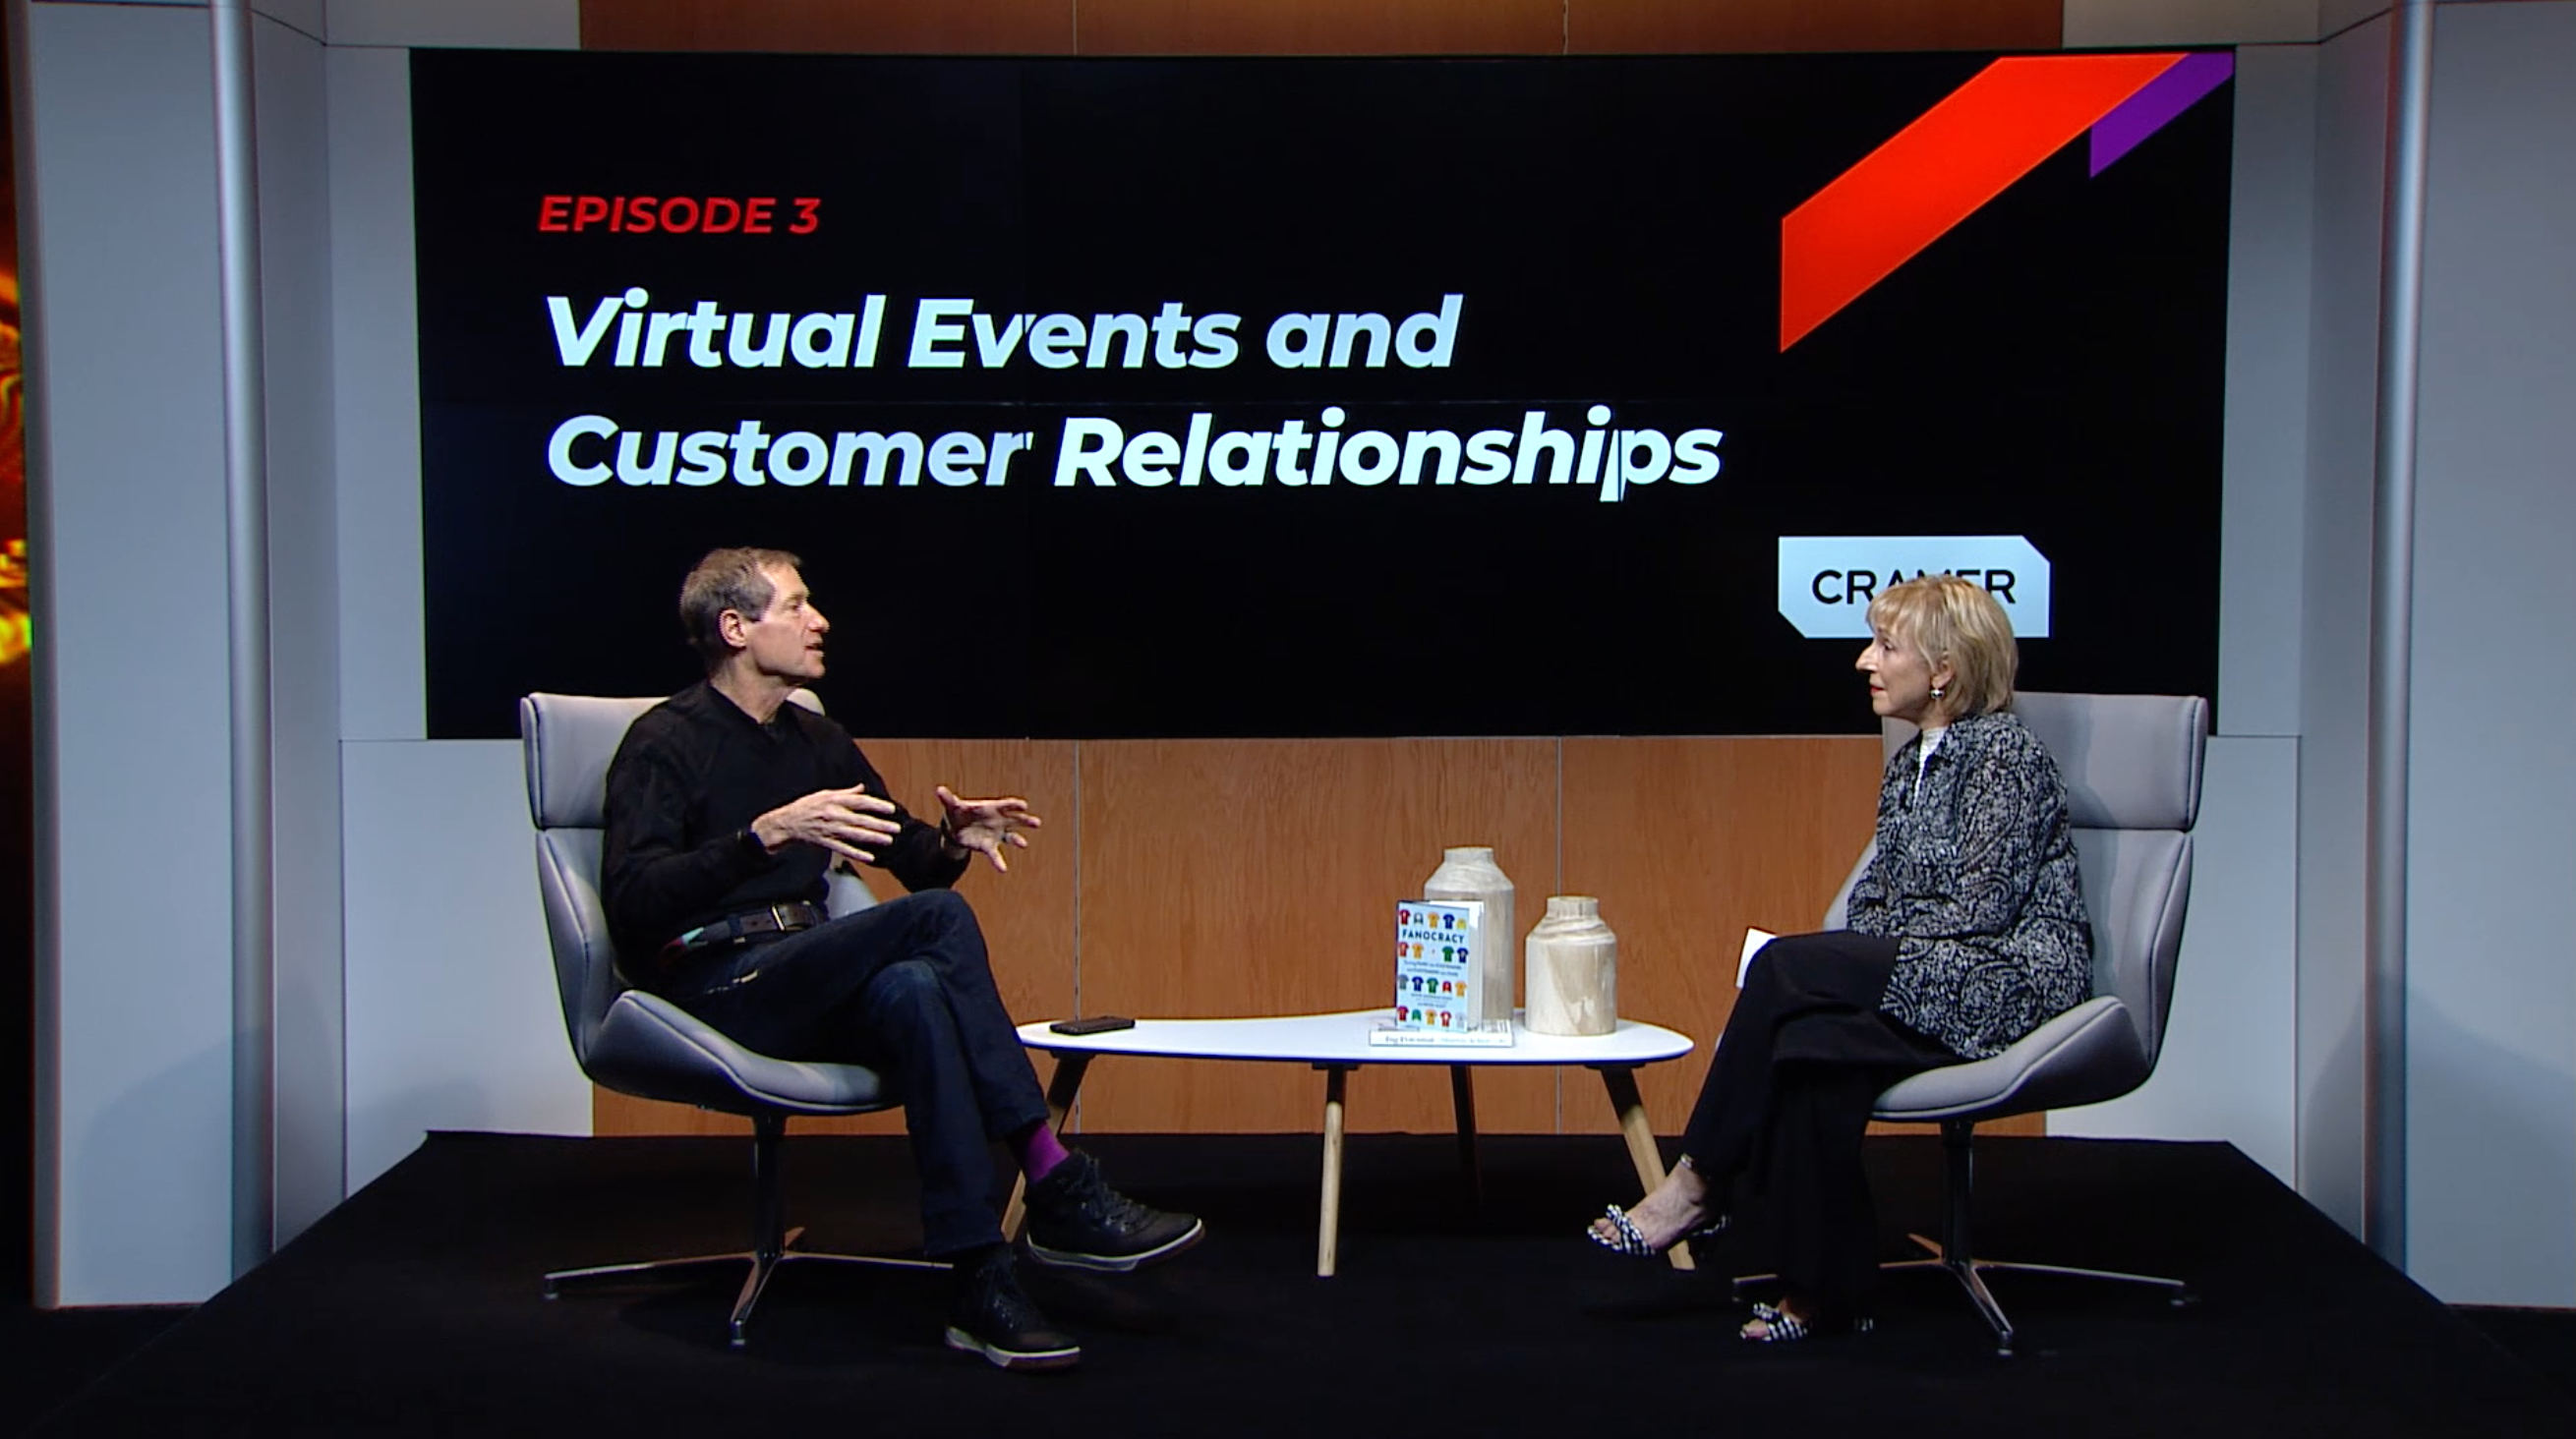 Virtual Events and Customer Relationships